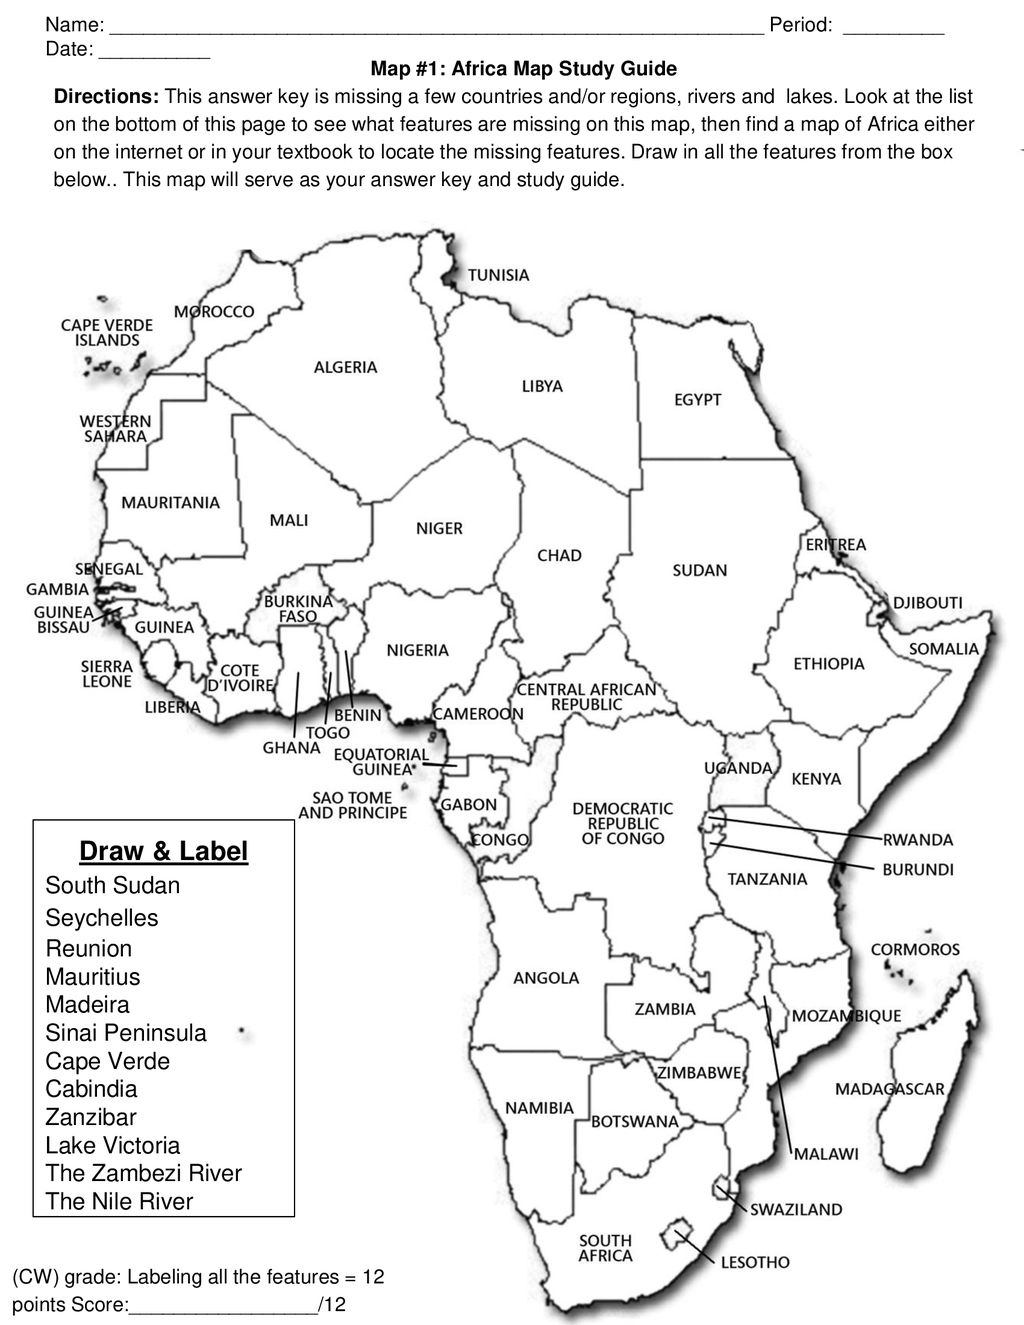 Africa Map Study Map #1: Africa Map Study Guide   ppt download